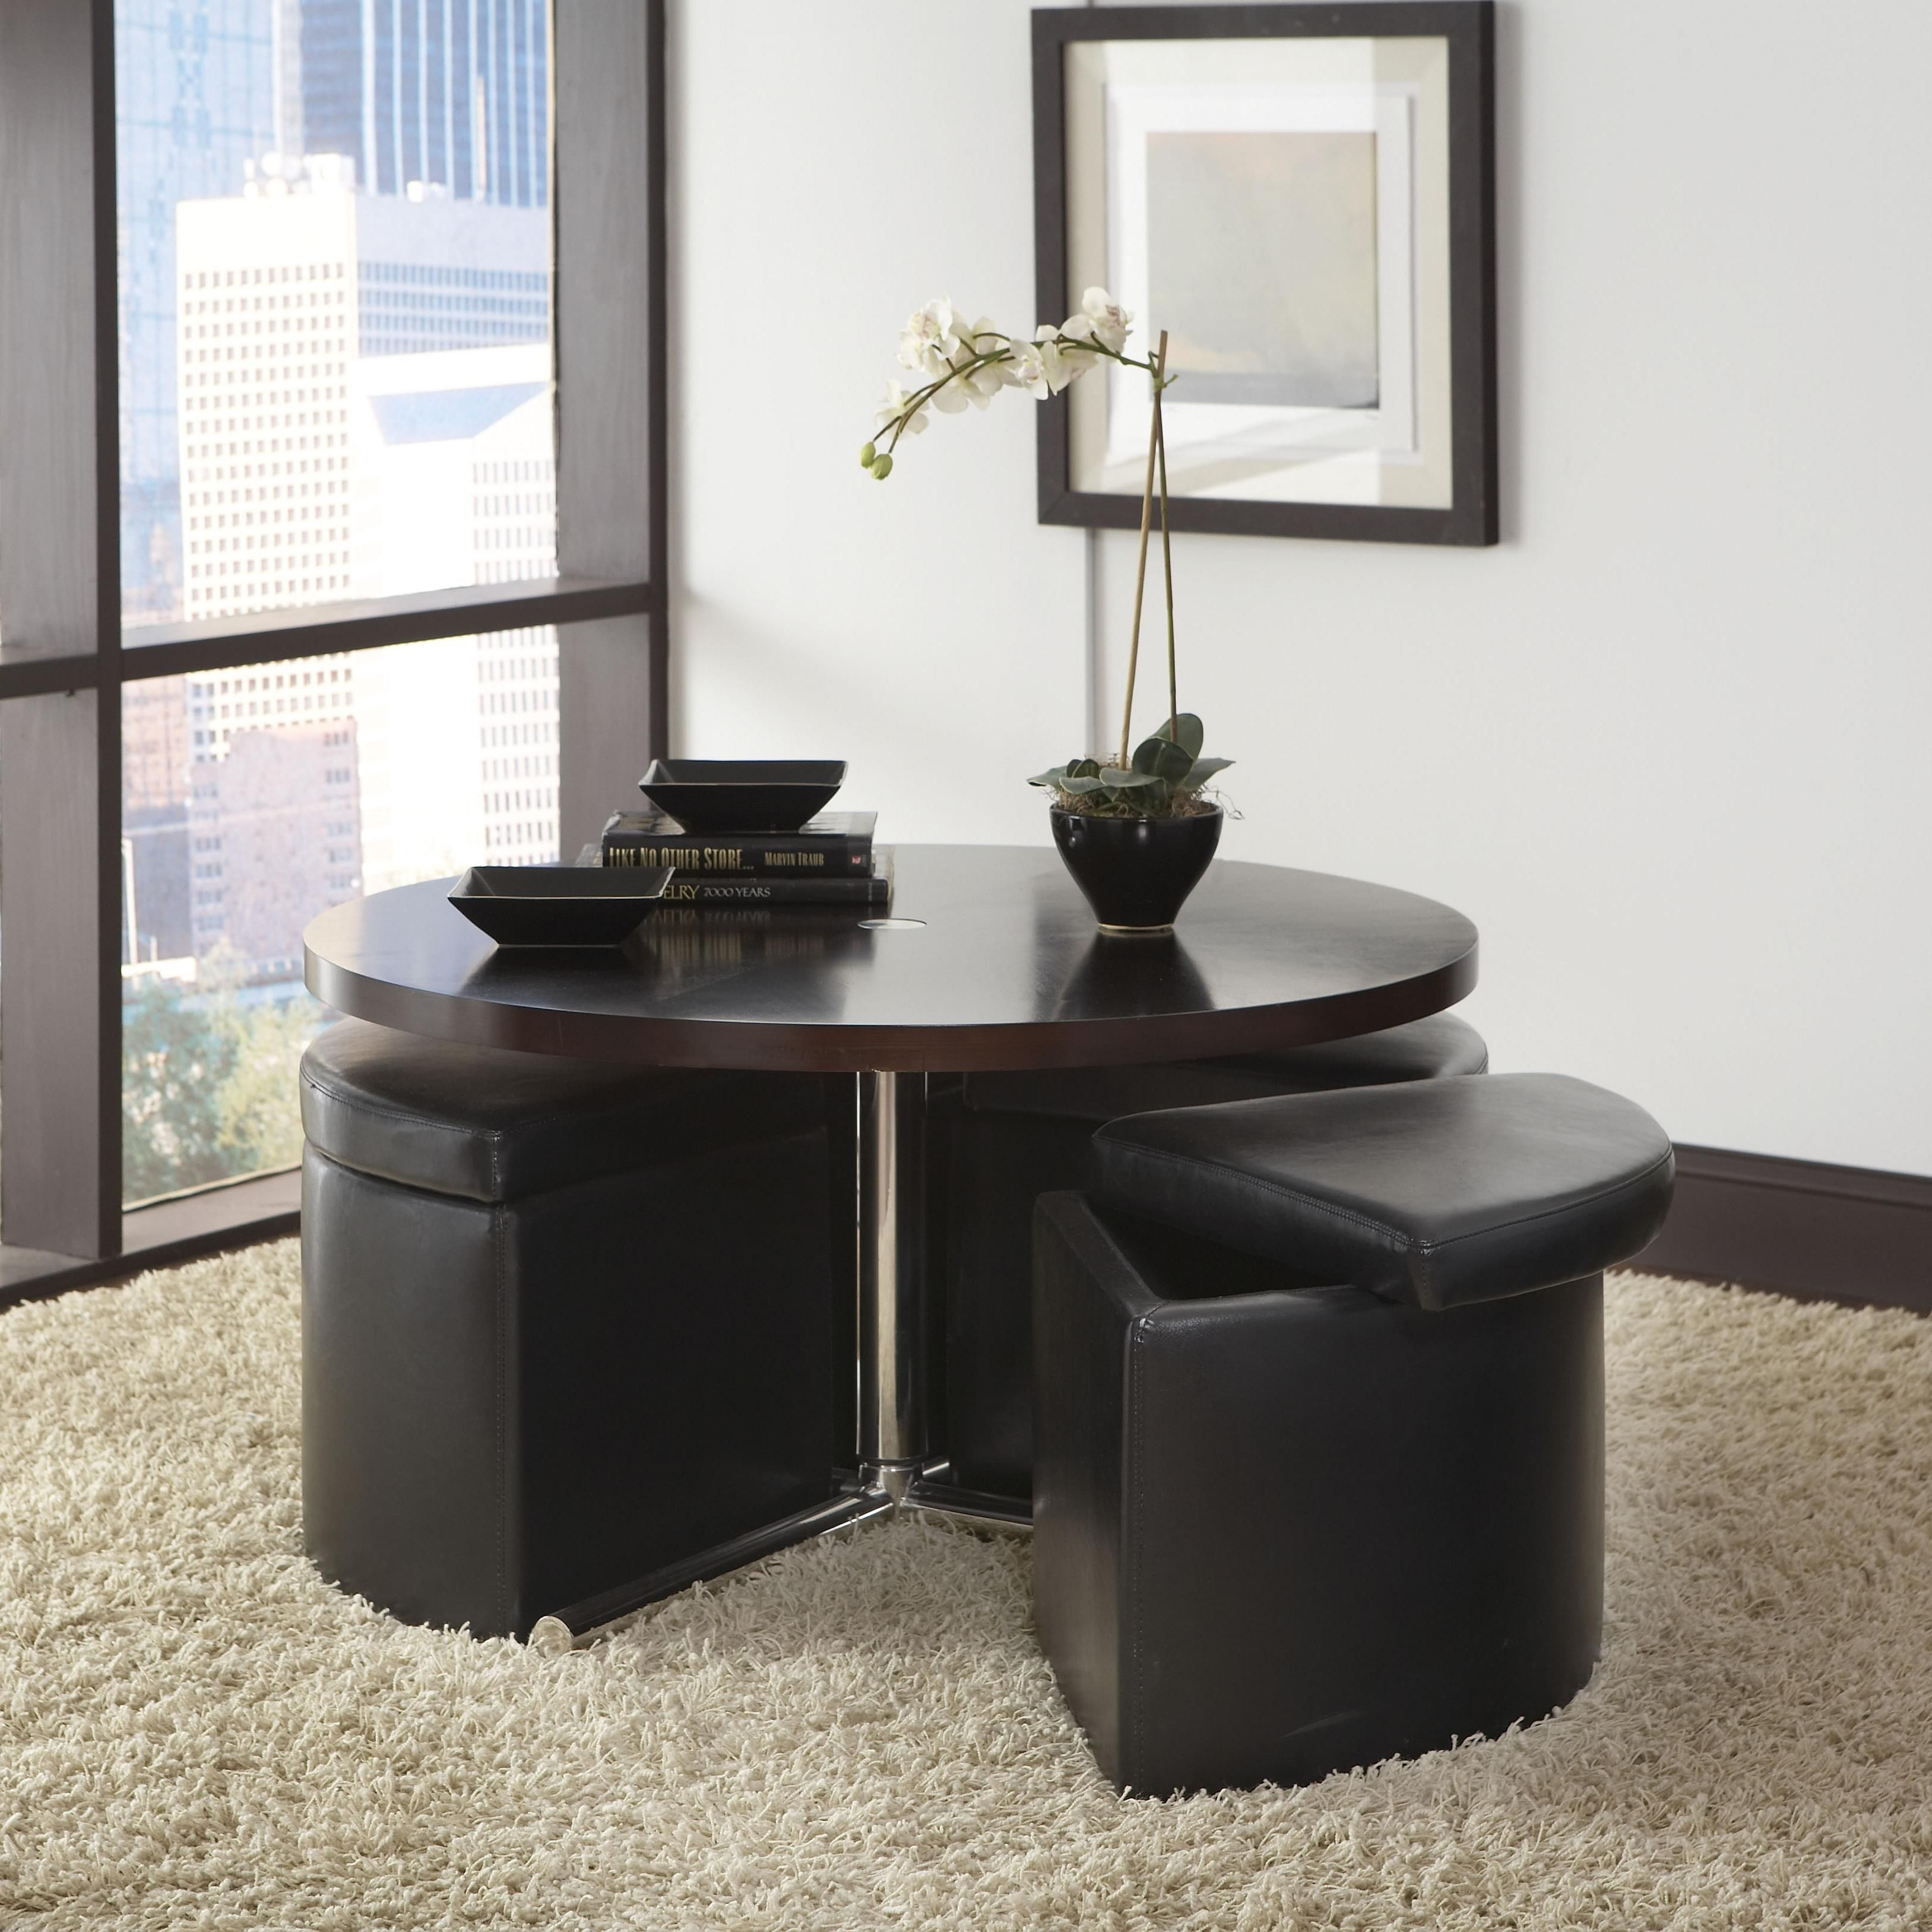 699 97 At The Brick Right Now But I Cannot Find It On Their Website Cosmo Round Wood Top Table With 4 Coffee Table Wood Cocktail Table Ottoman Coffee Table [ jpg ]